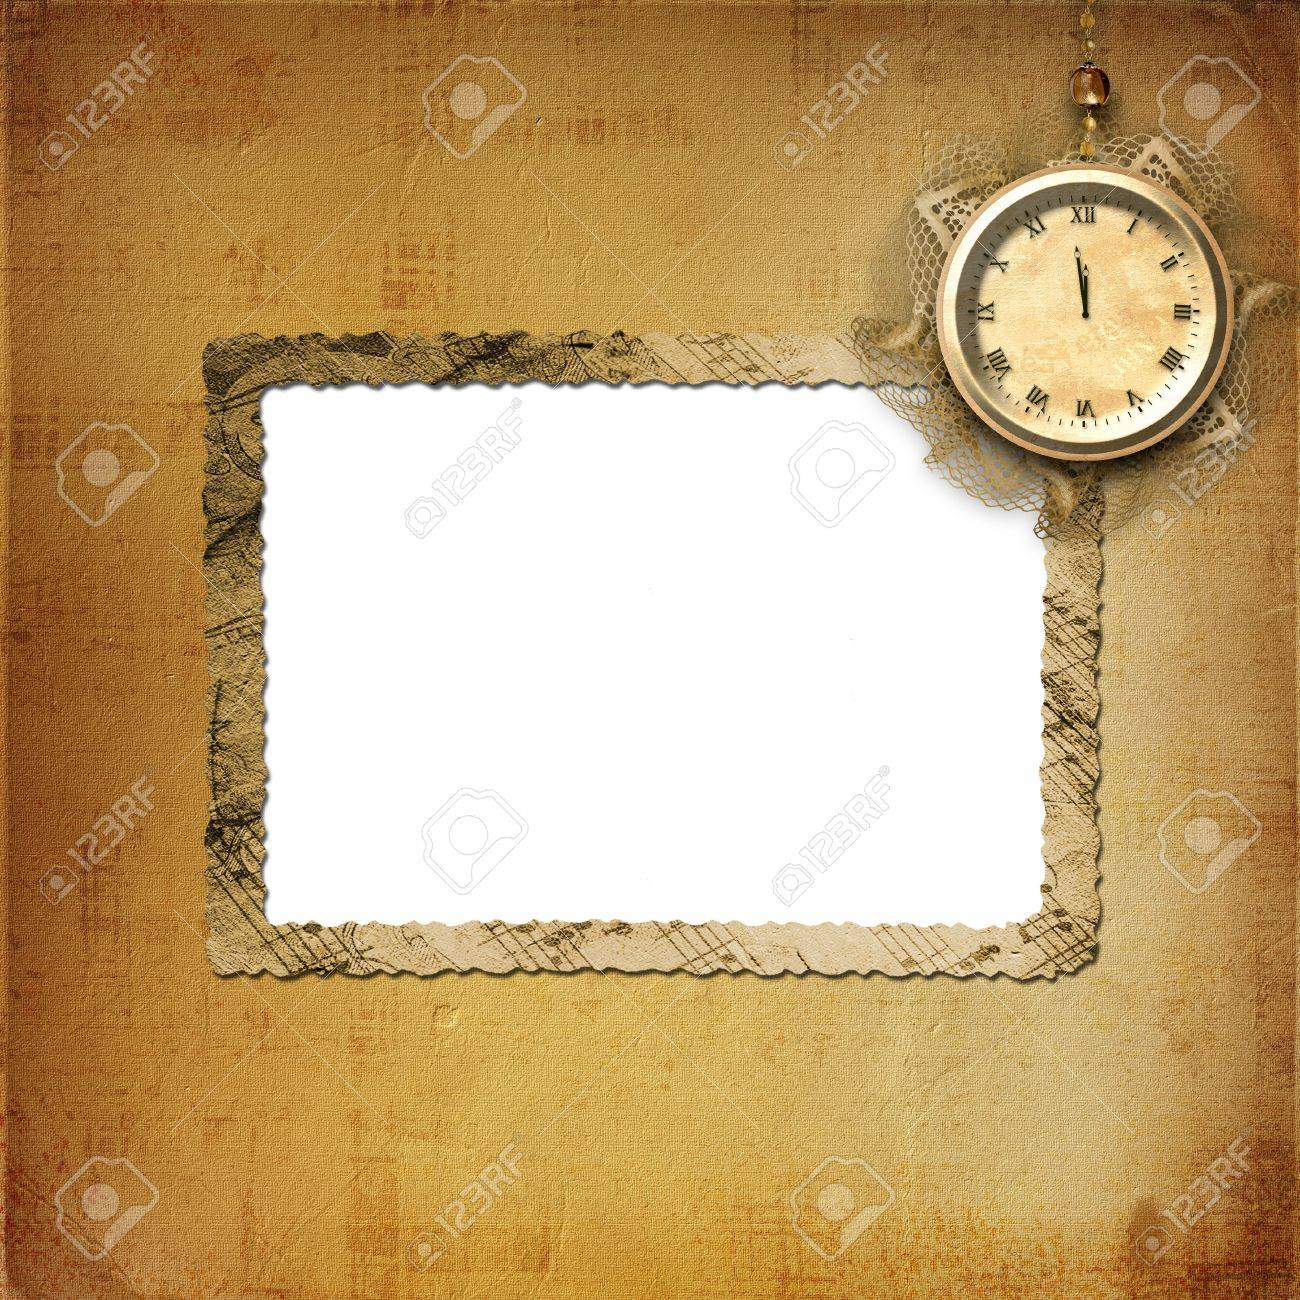 Antique clock face with lace on the abstract background Stock Photo - 5988682